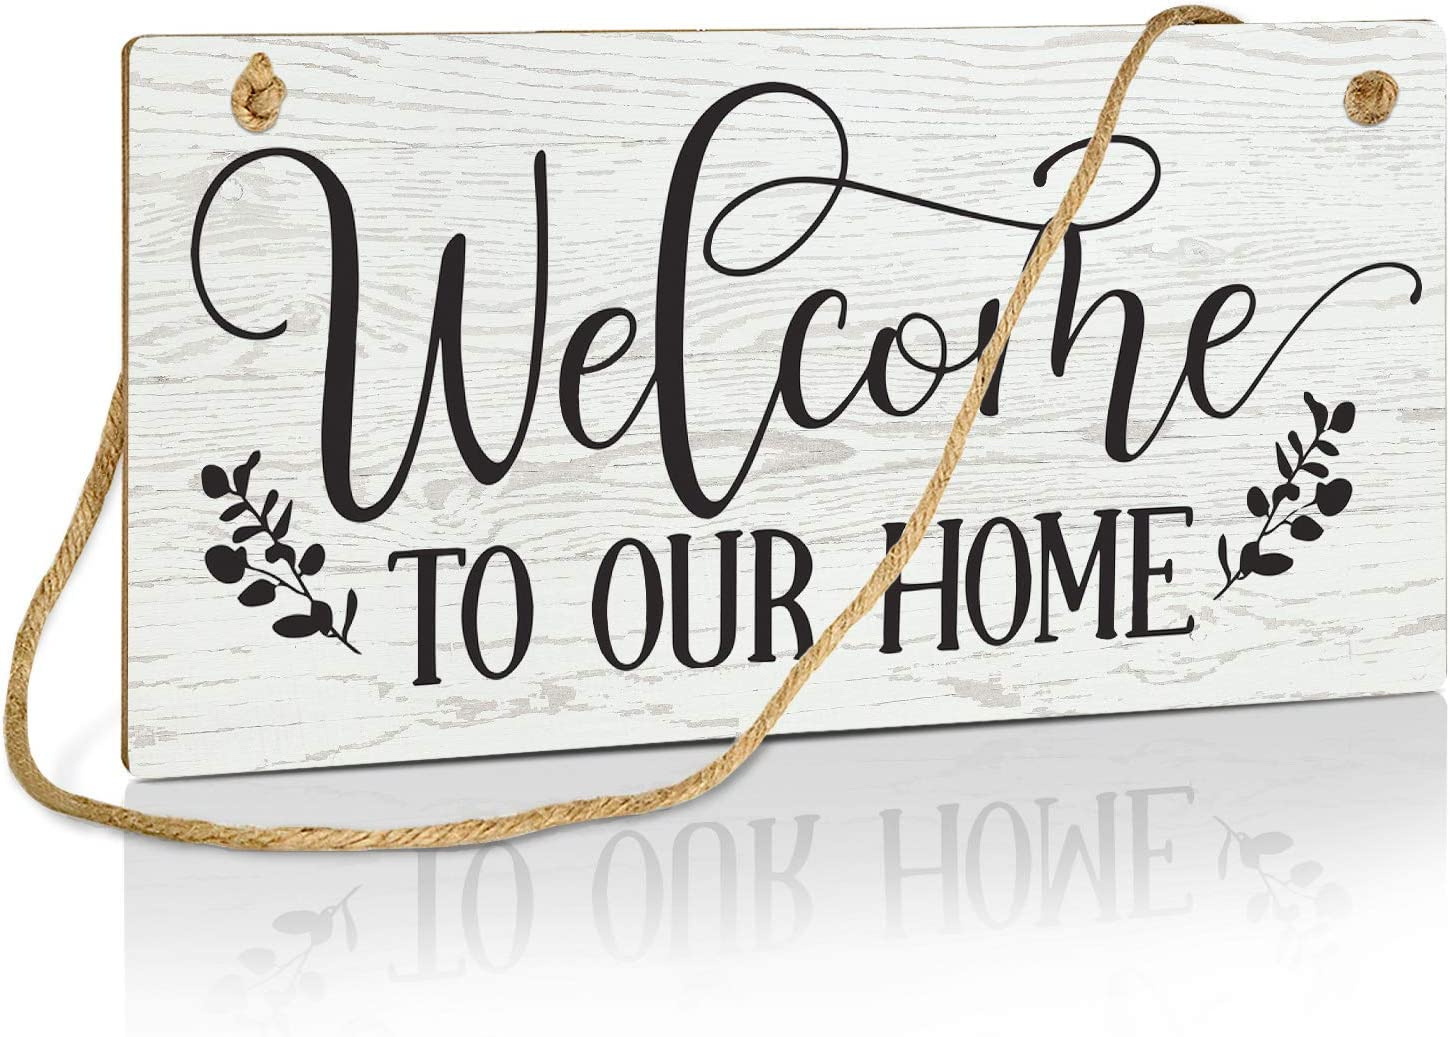 Putuo Decor Welcome to Our Home Sign, 10x5 Inch Hanging Plaque for Door, Wall - Welcome to Our Home 1